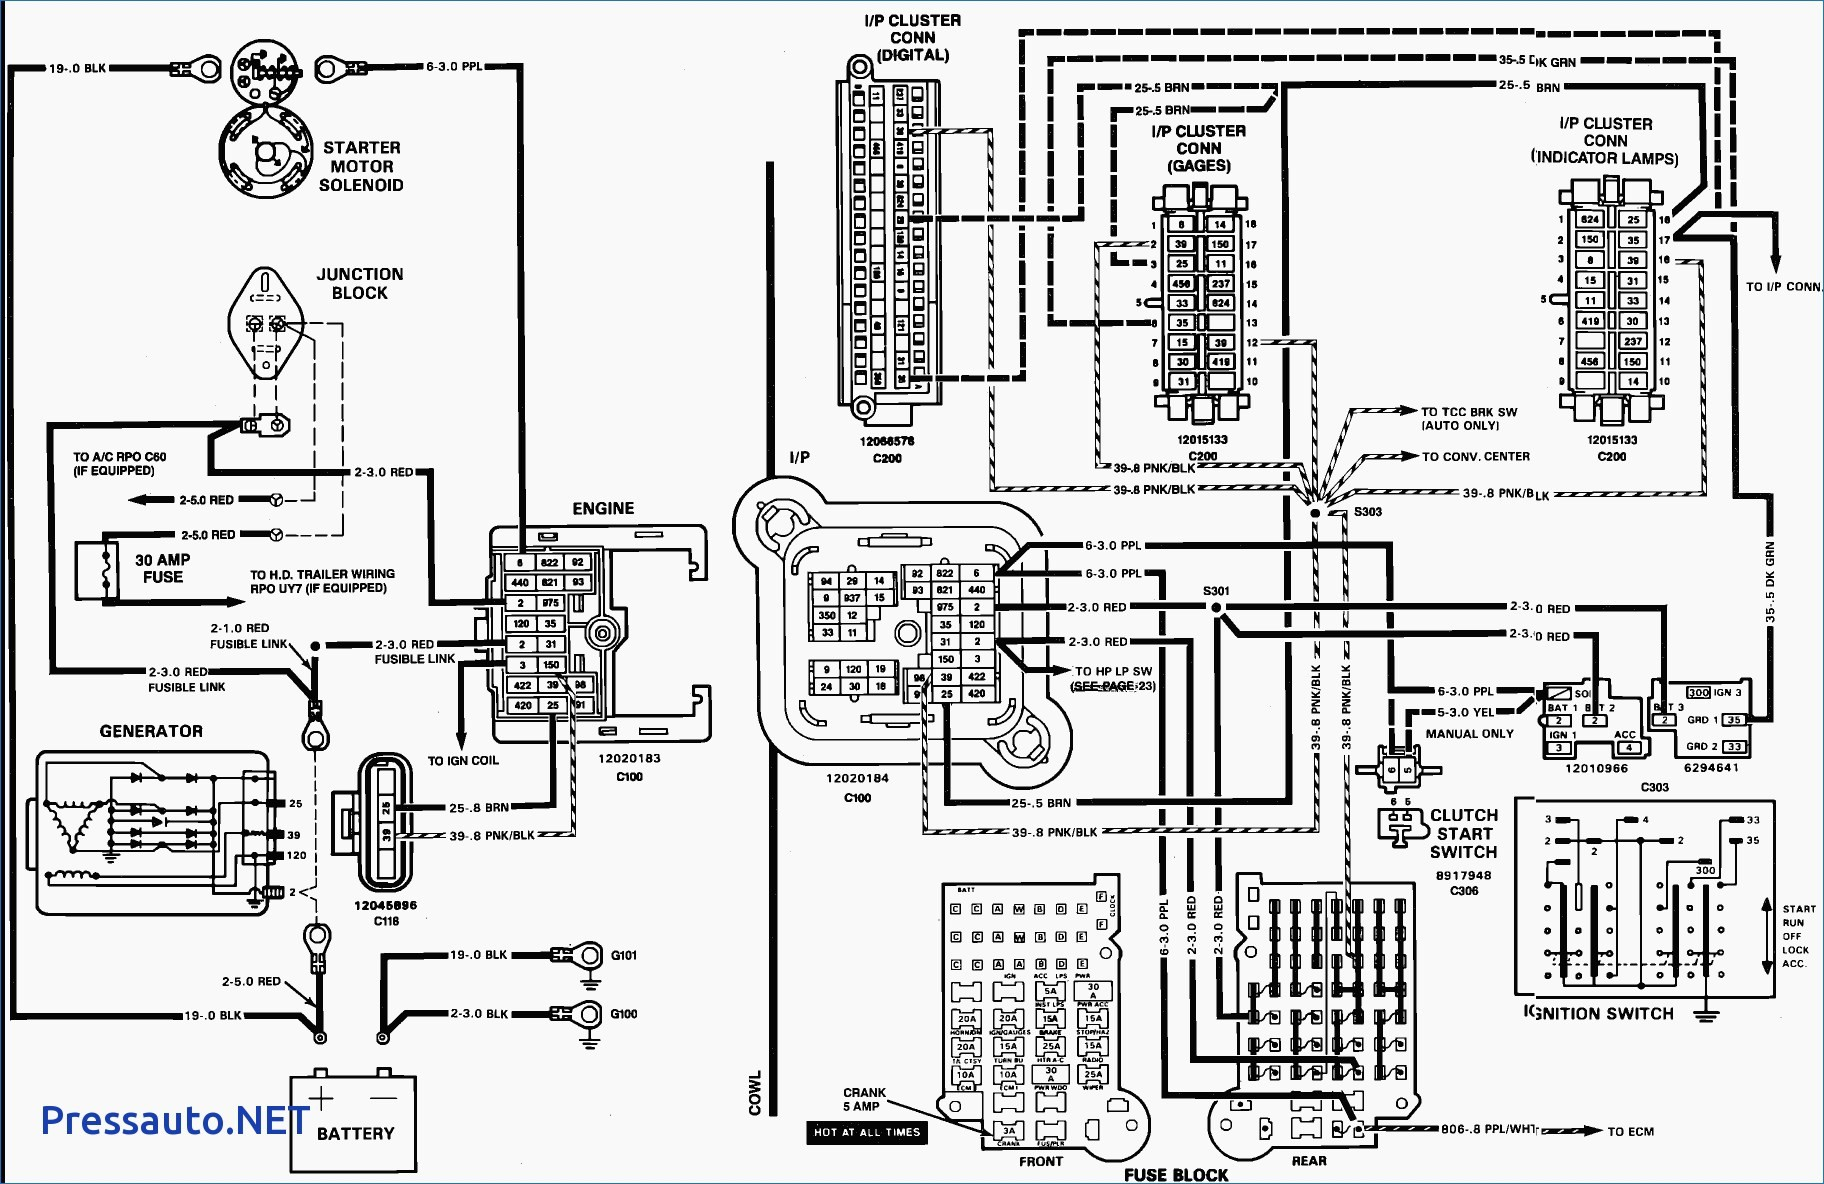 hight resolution of 1997 chevrolet s10 wiring diagram example electrical wiring diagram u2022 rh huntervalleyhotels co 94 s10 engine